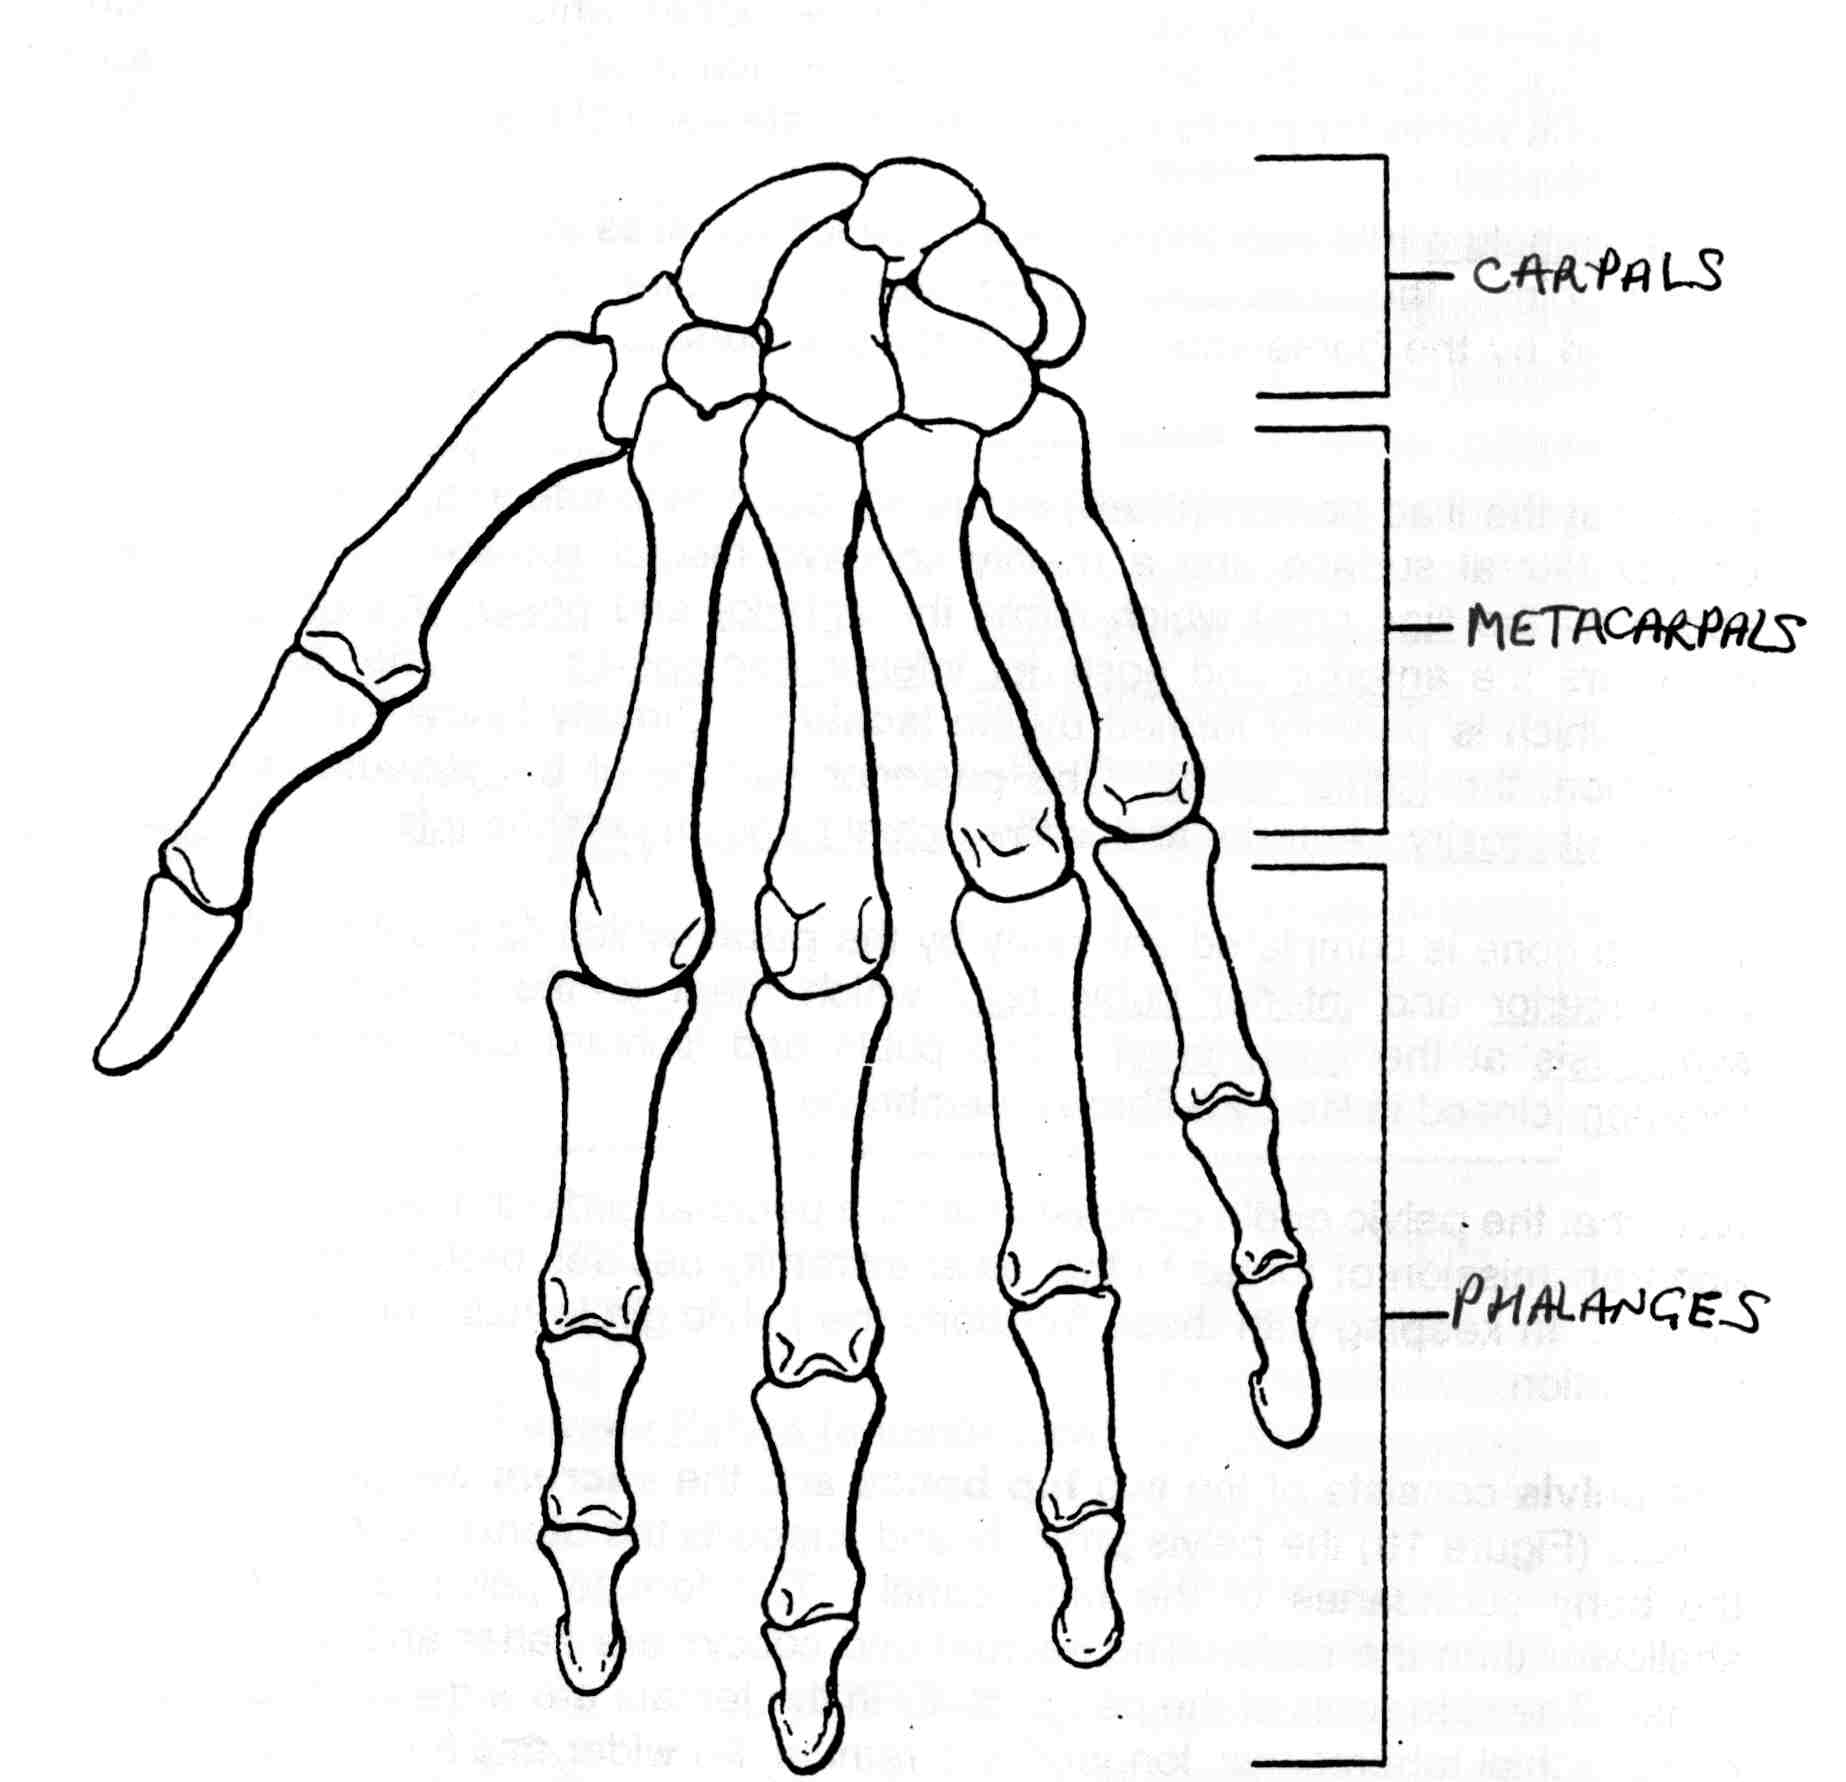 Hand Skeleton Drawing At Getdrawings Free For Personal Use